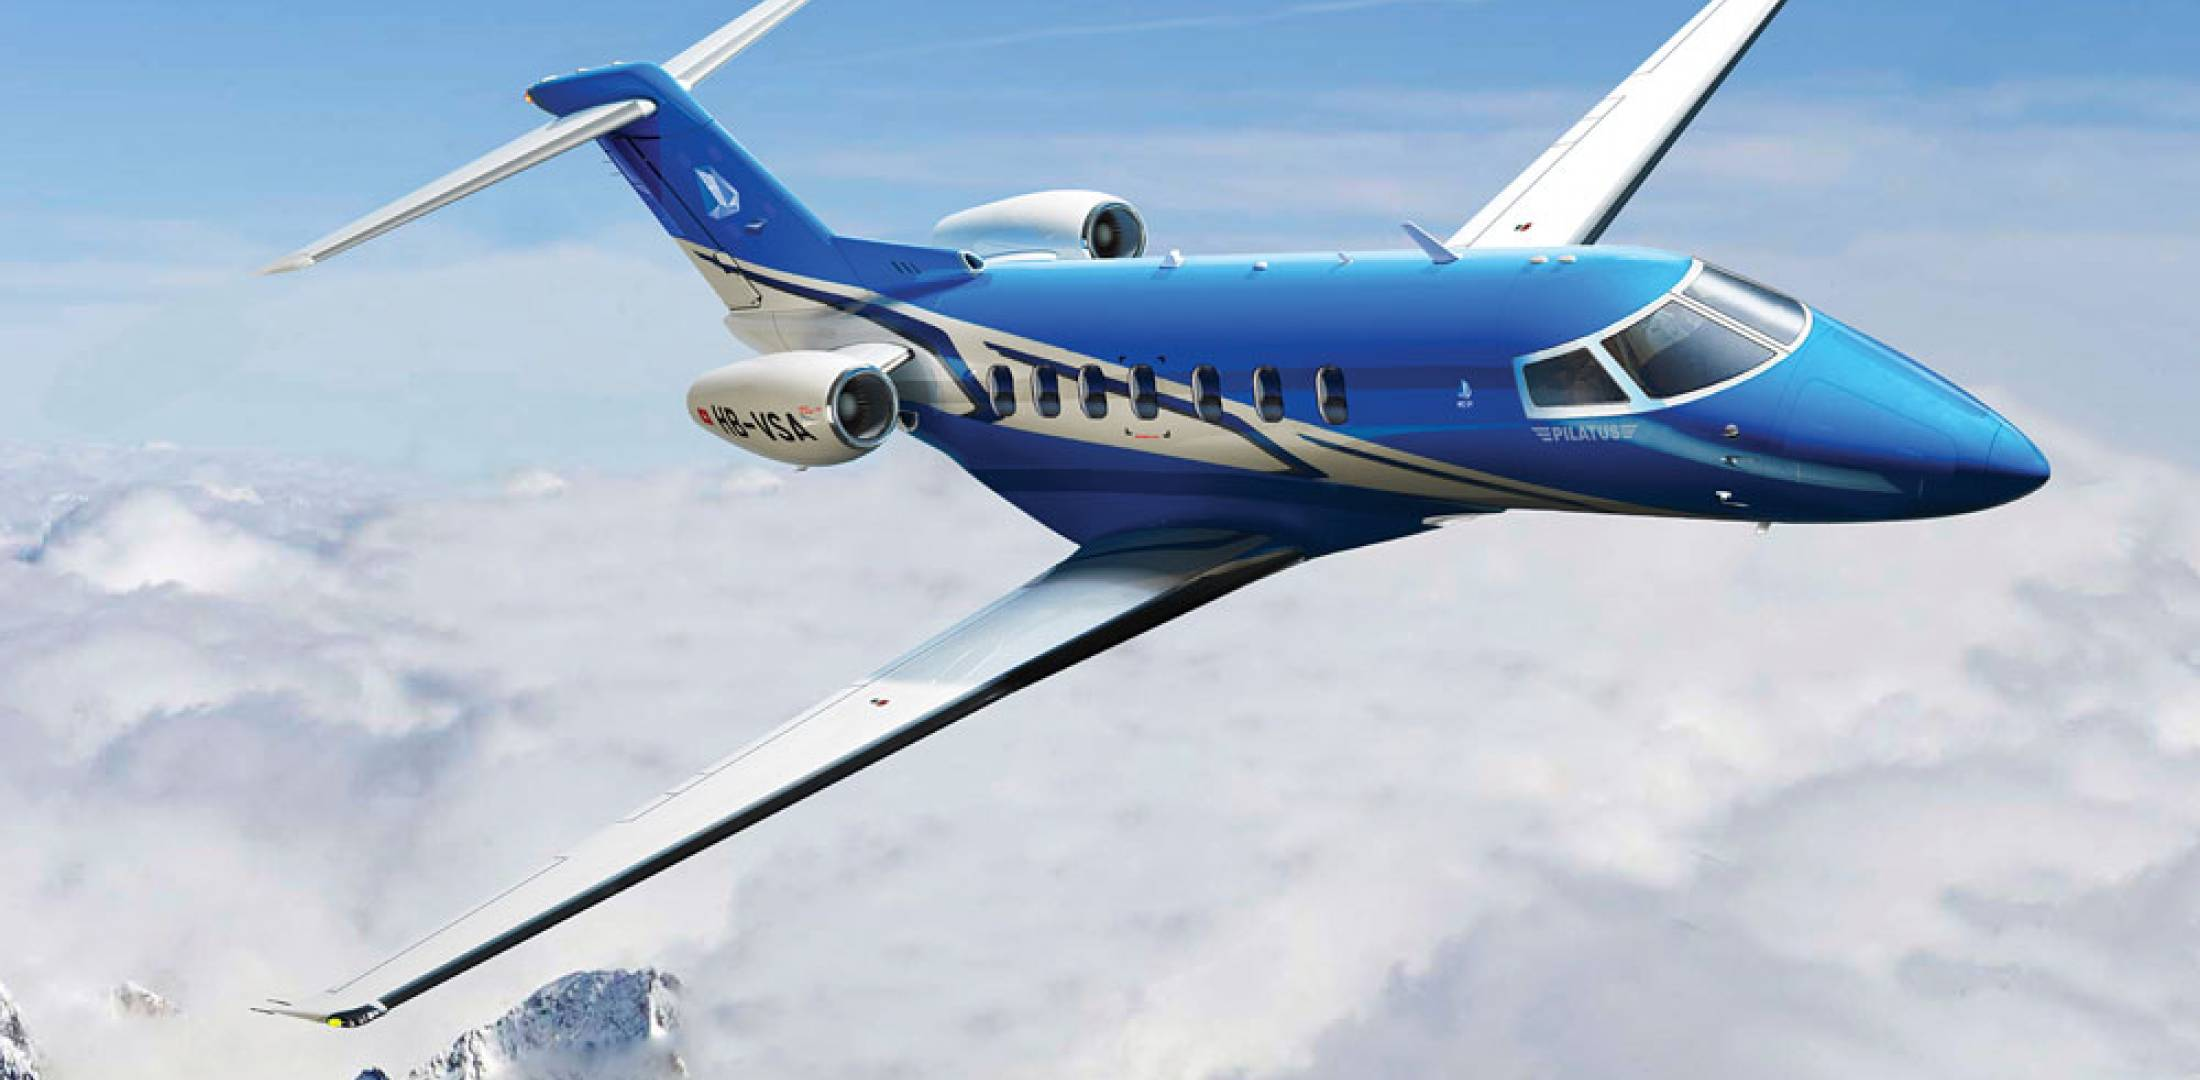 The twinjet Pilatus PC-24 is intended for FAA Part 23 and EASA CS 23 certification in the commuter category. It will seat six to eight passengers or up to 10 in commuter configuration.